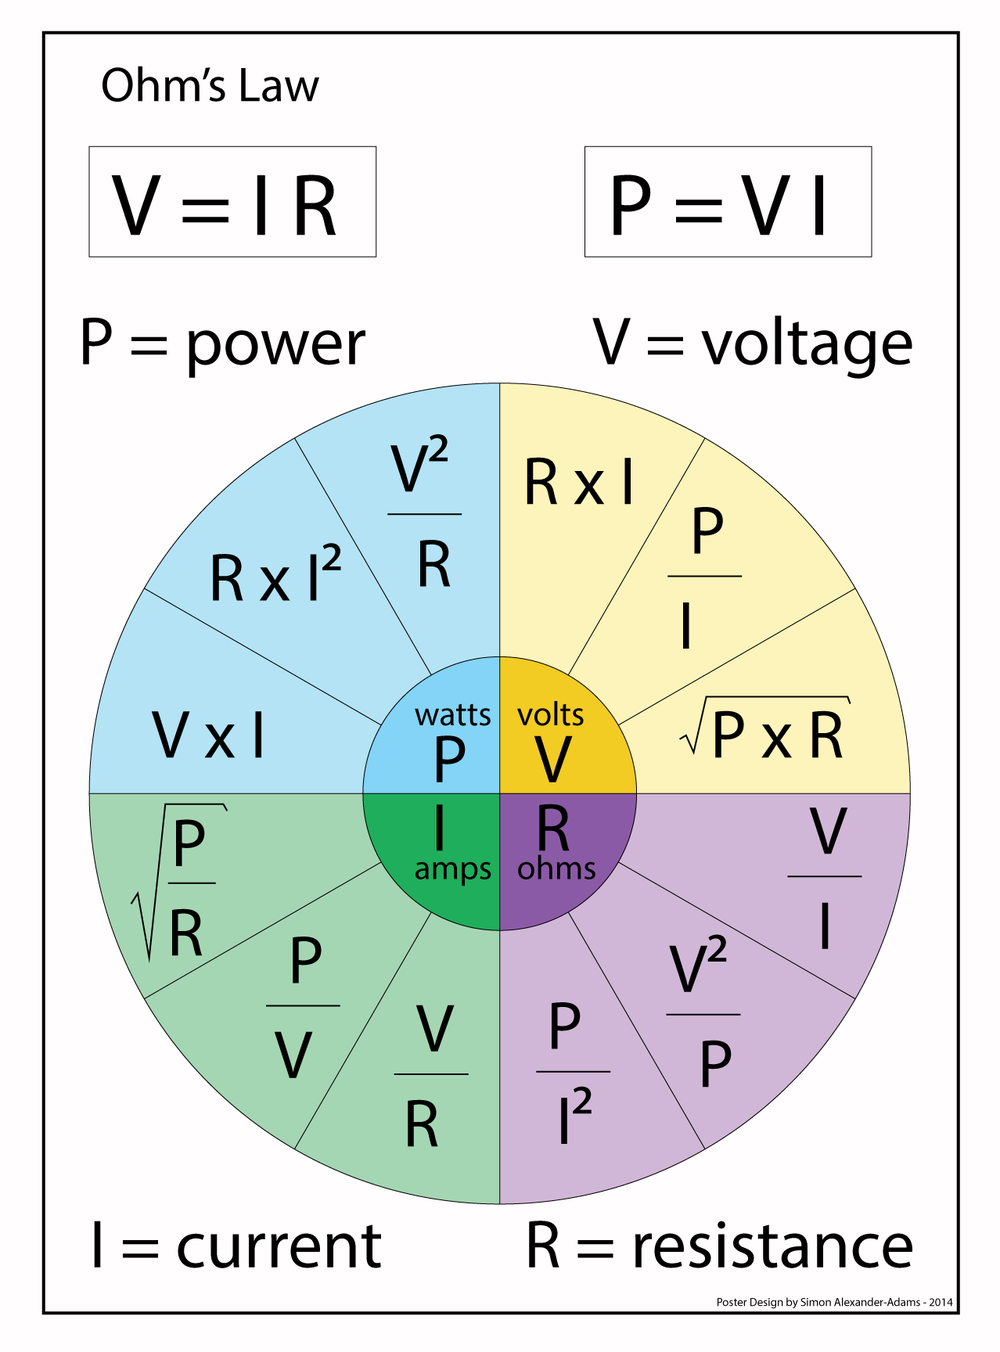 ohms-law.png